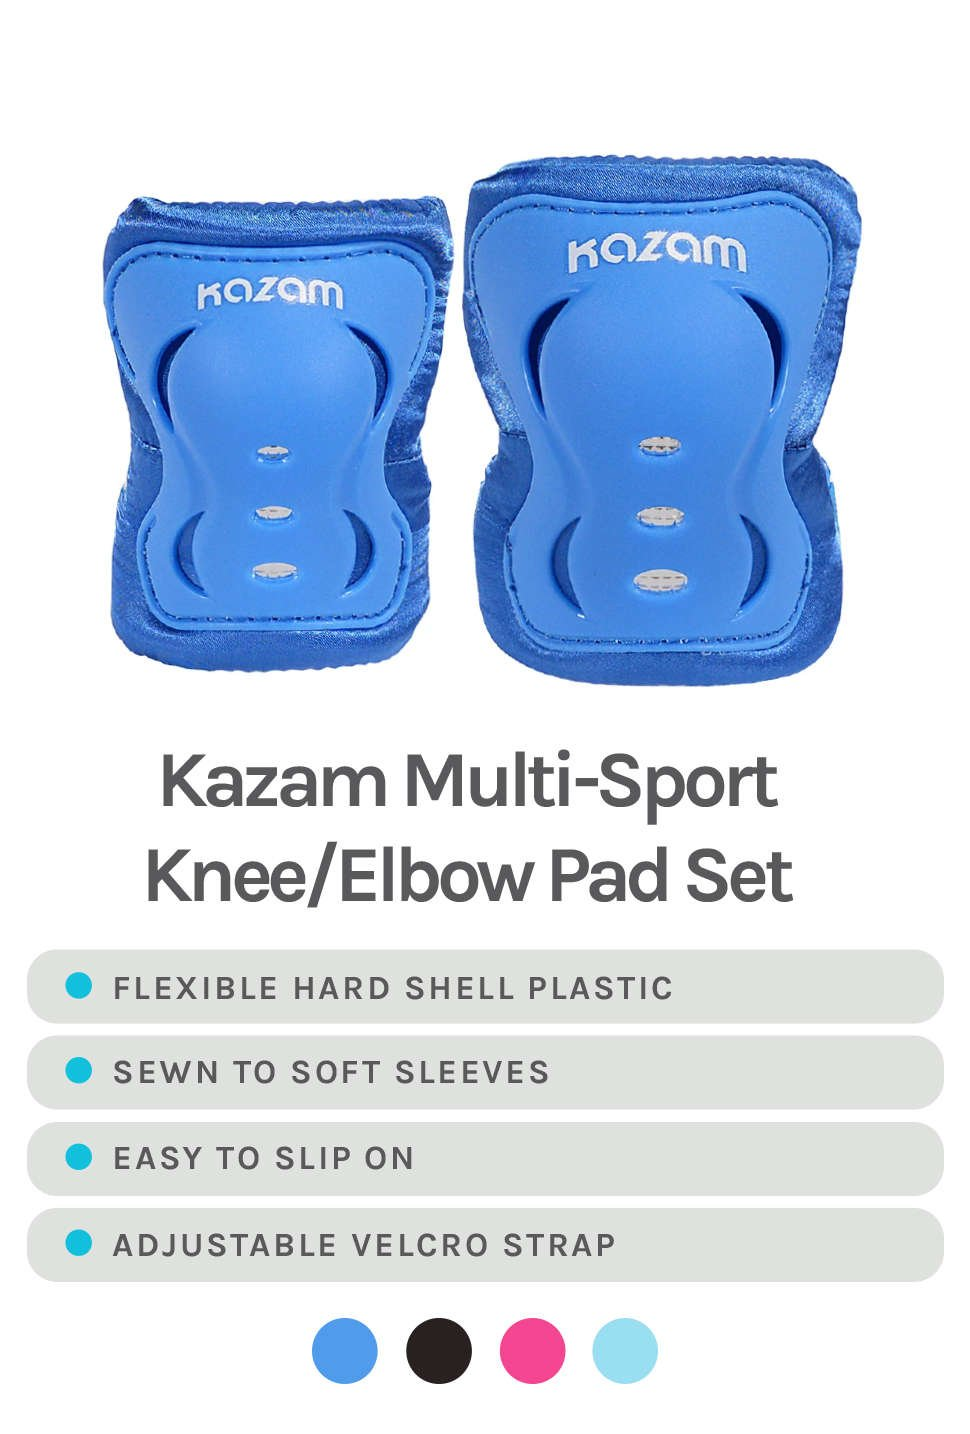 Kazam Multi-Sport Knee/Elbow Pad Set - Features & Colors